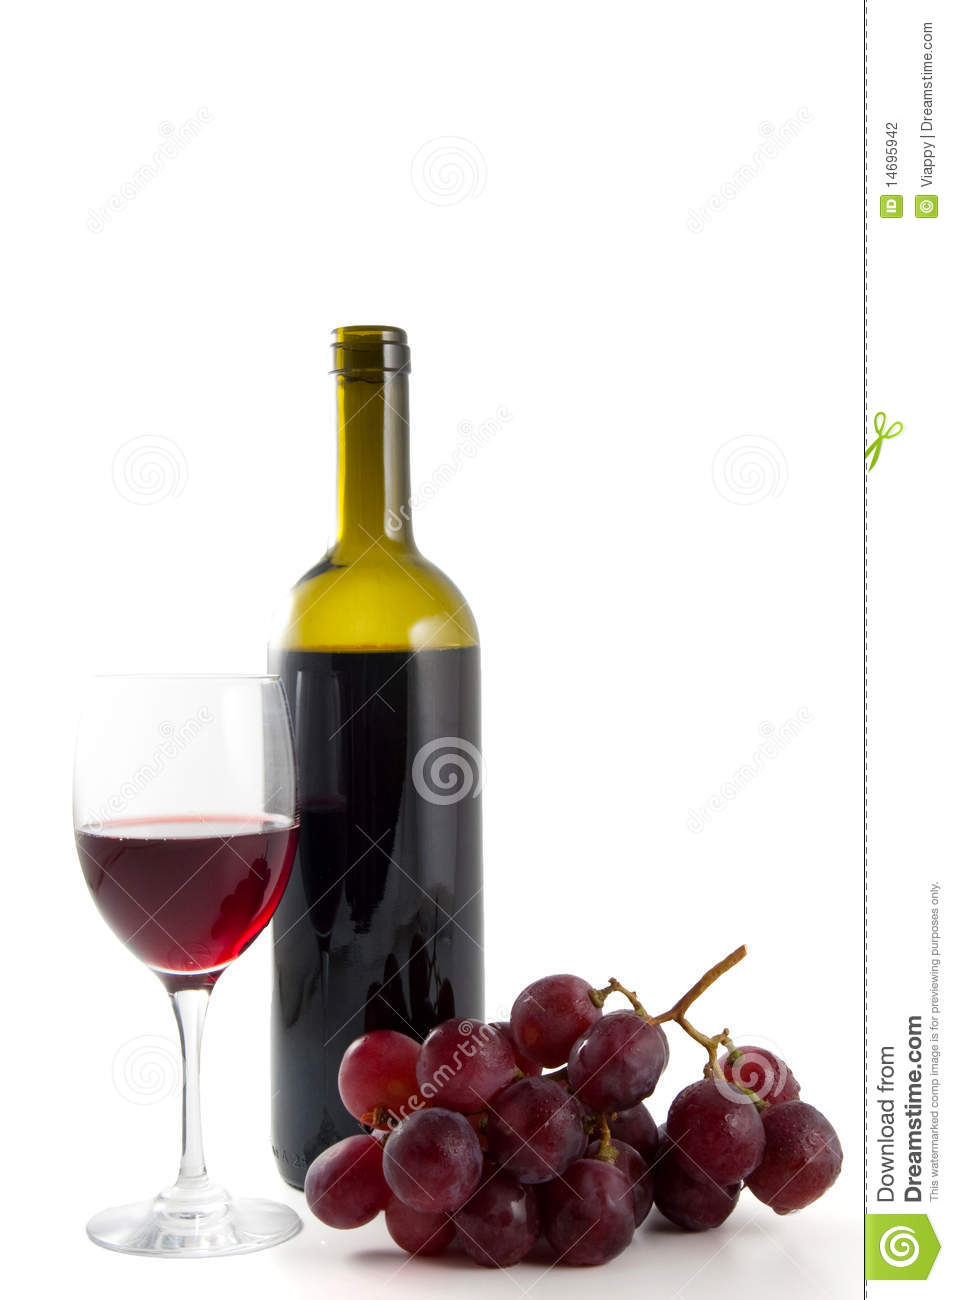 Wine bottle grapes and glass stock photography image for What to do with a wine bottle